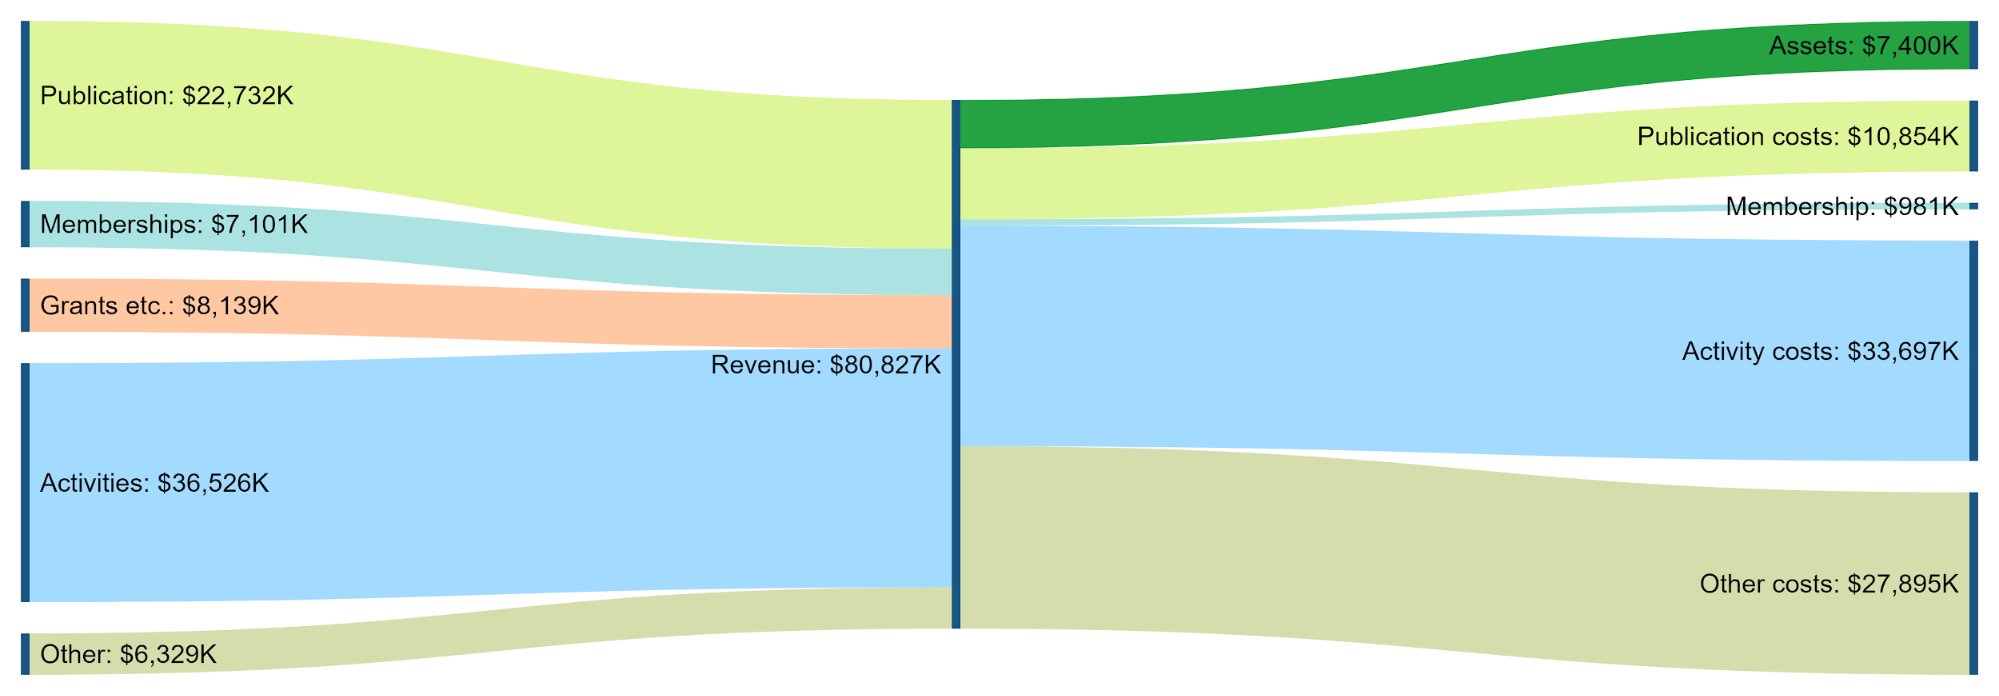 Sankey Diagram of ACM Column of the Table.